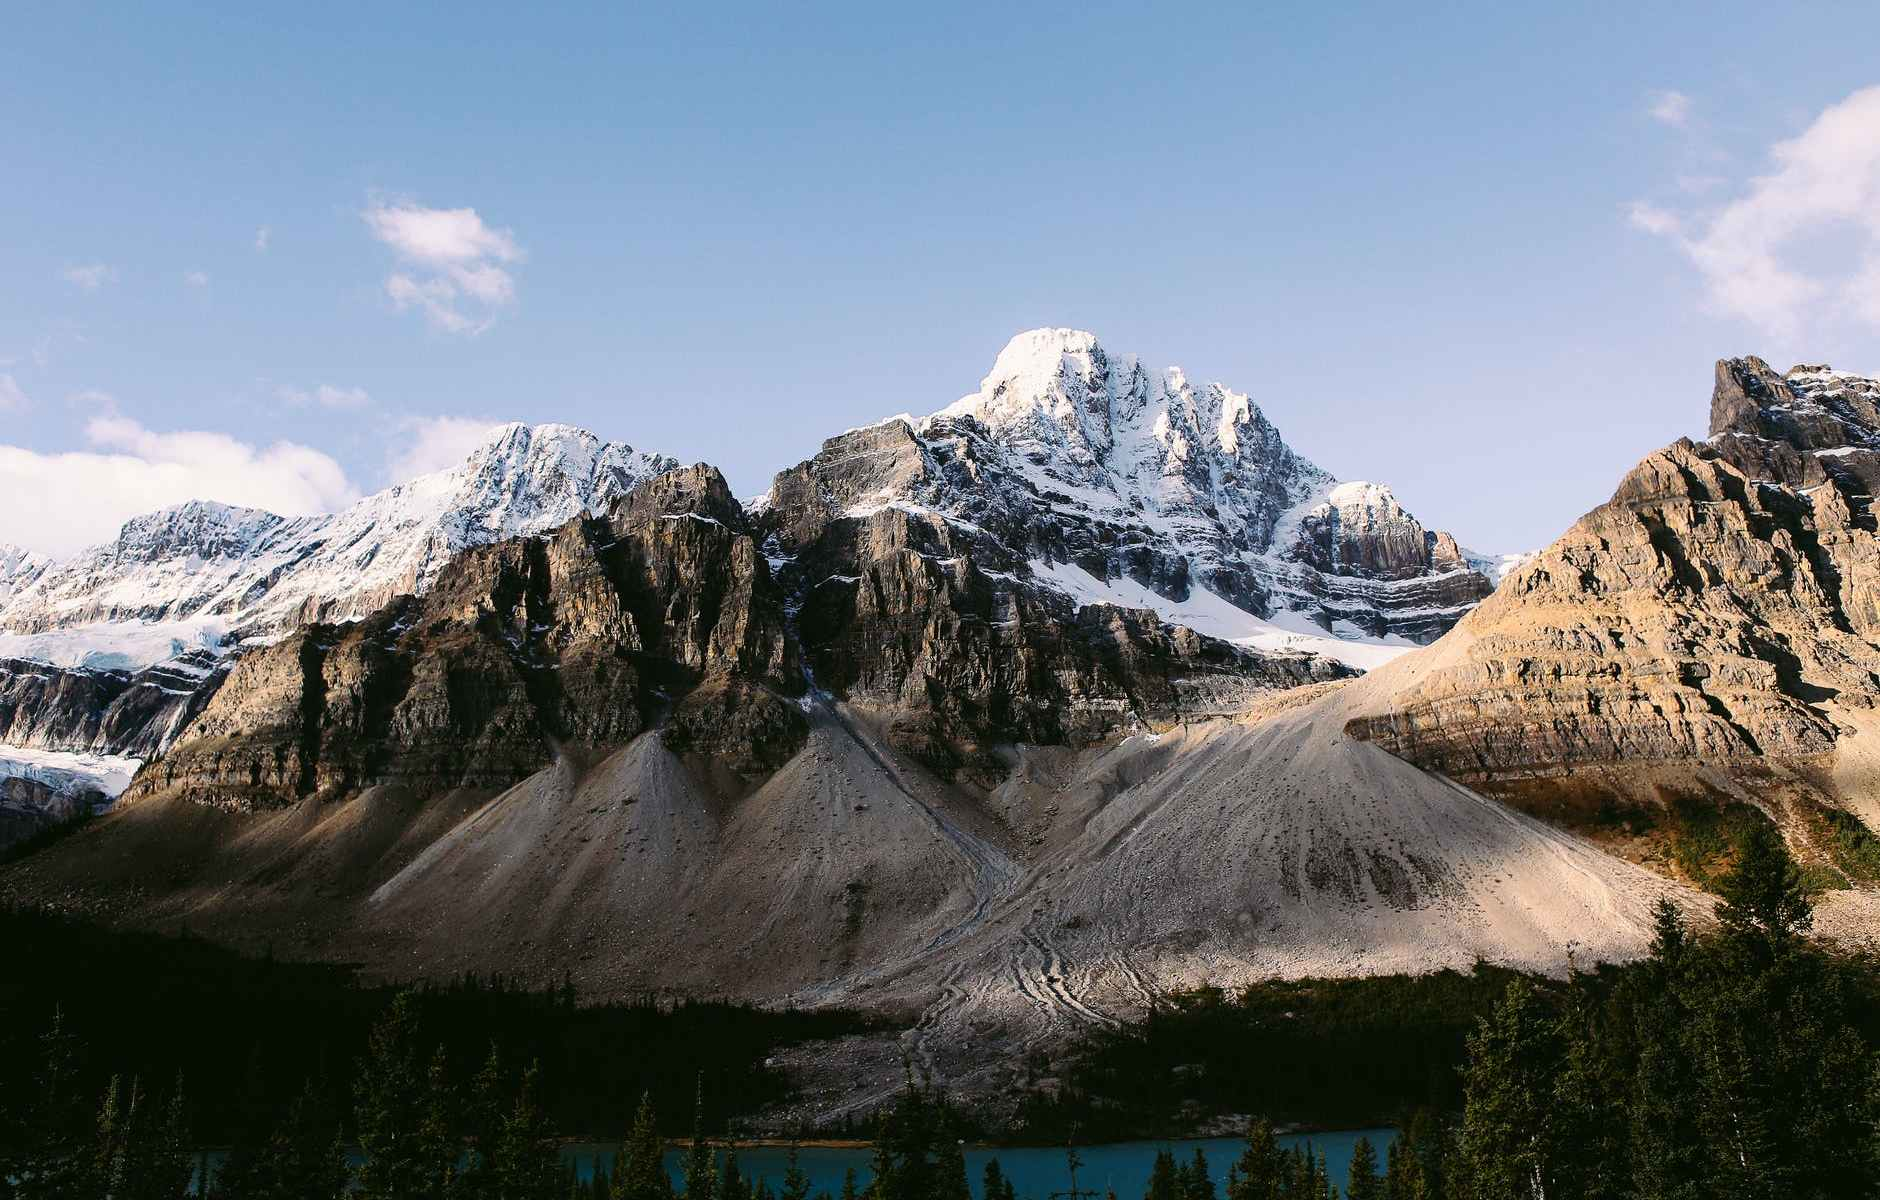 snowy mountain peaks near river and evergreen forest